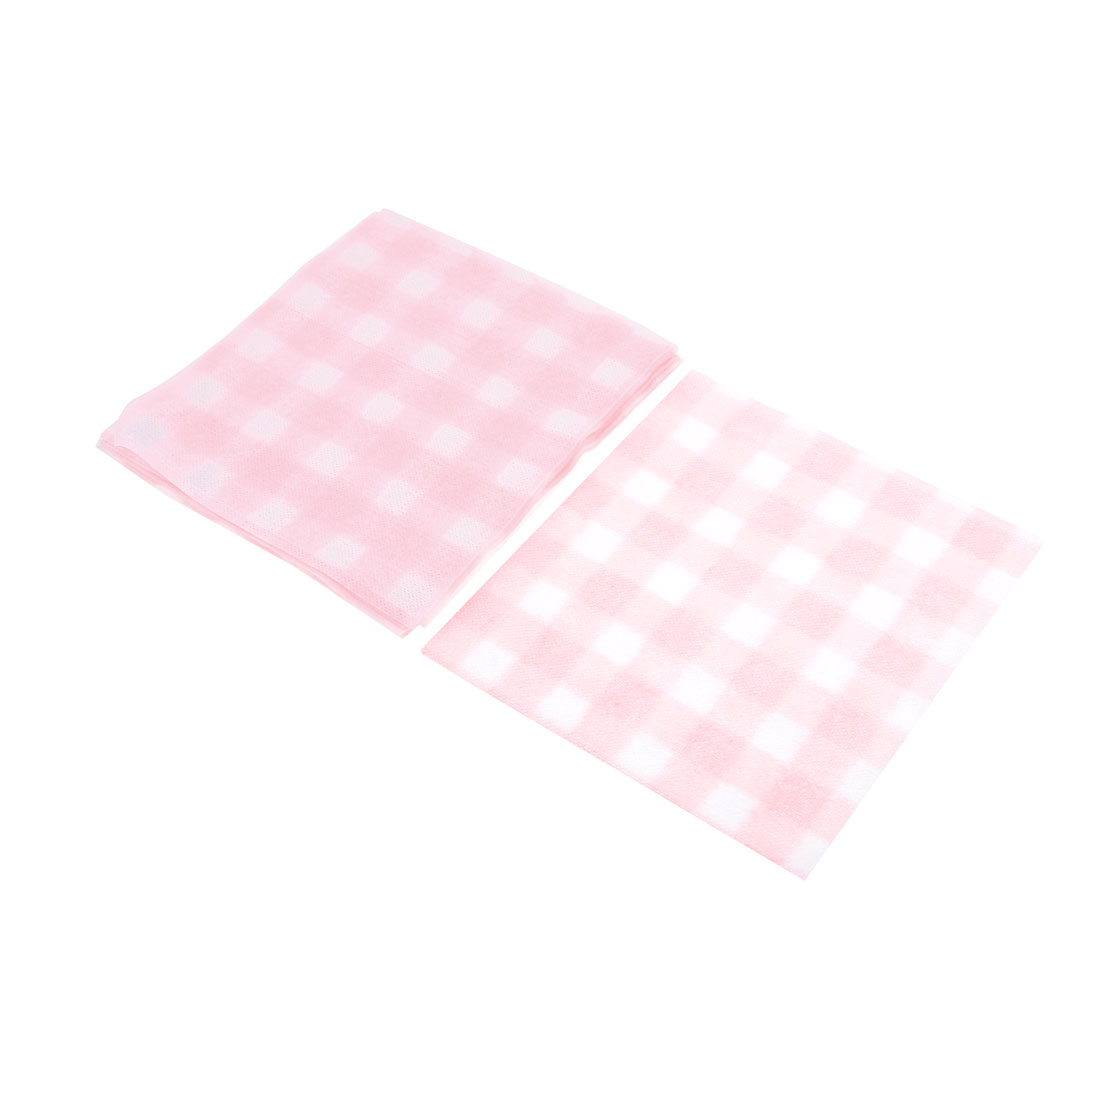 Outdoors Hiking Pink White Diaposable Facial Wash Dry Towels 18 Pcs